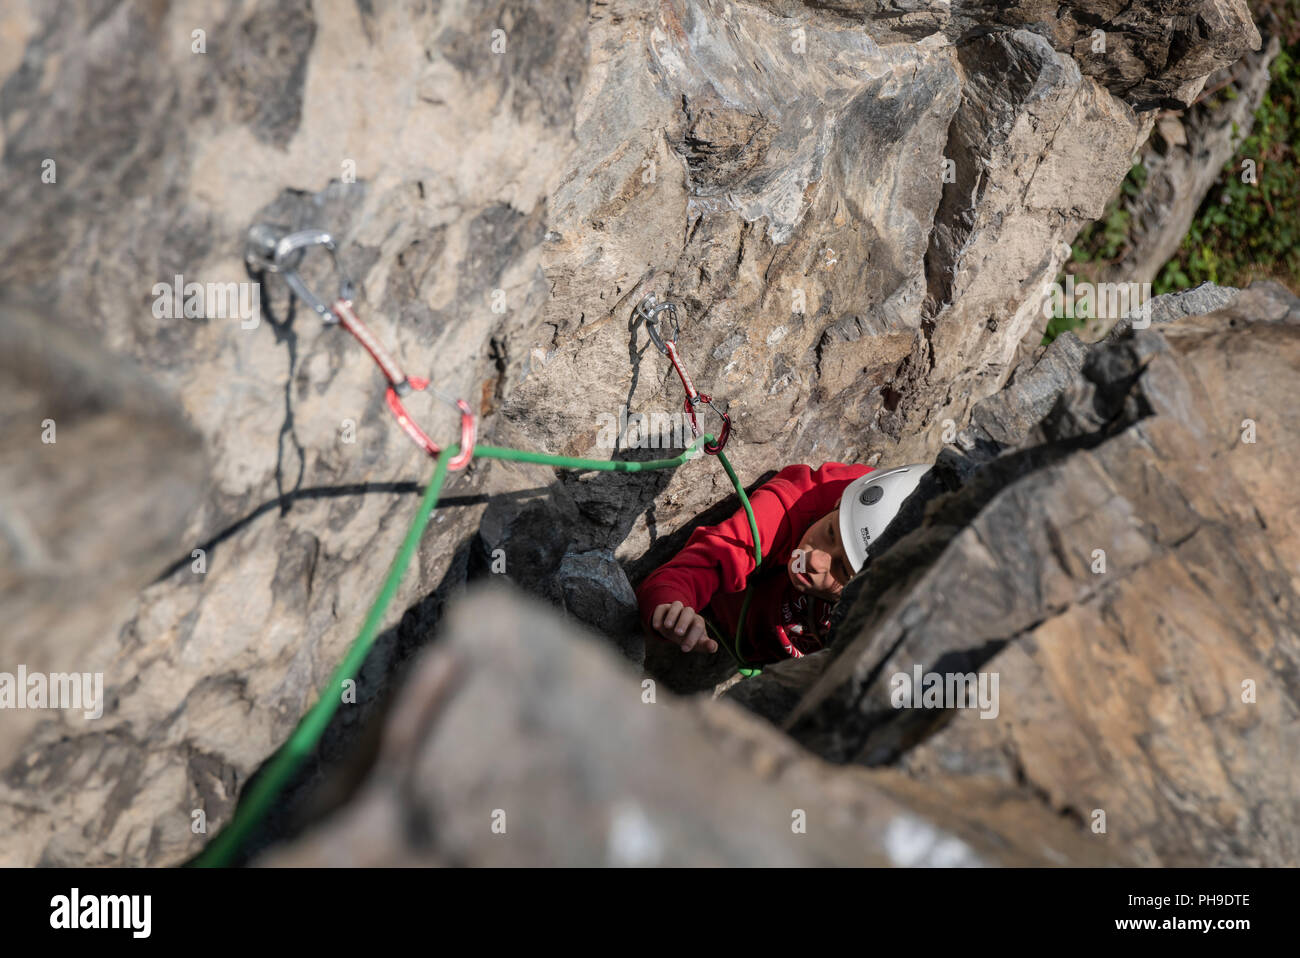 A young boy on a multi pitch rock climb in the Rhone valley, Switzerland Stock Photo